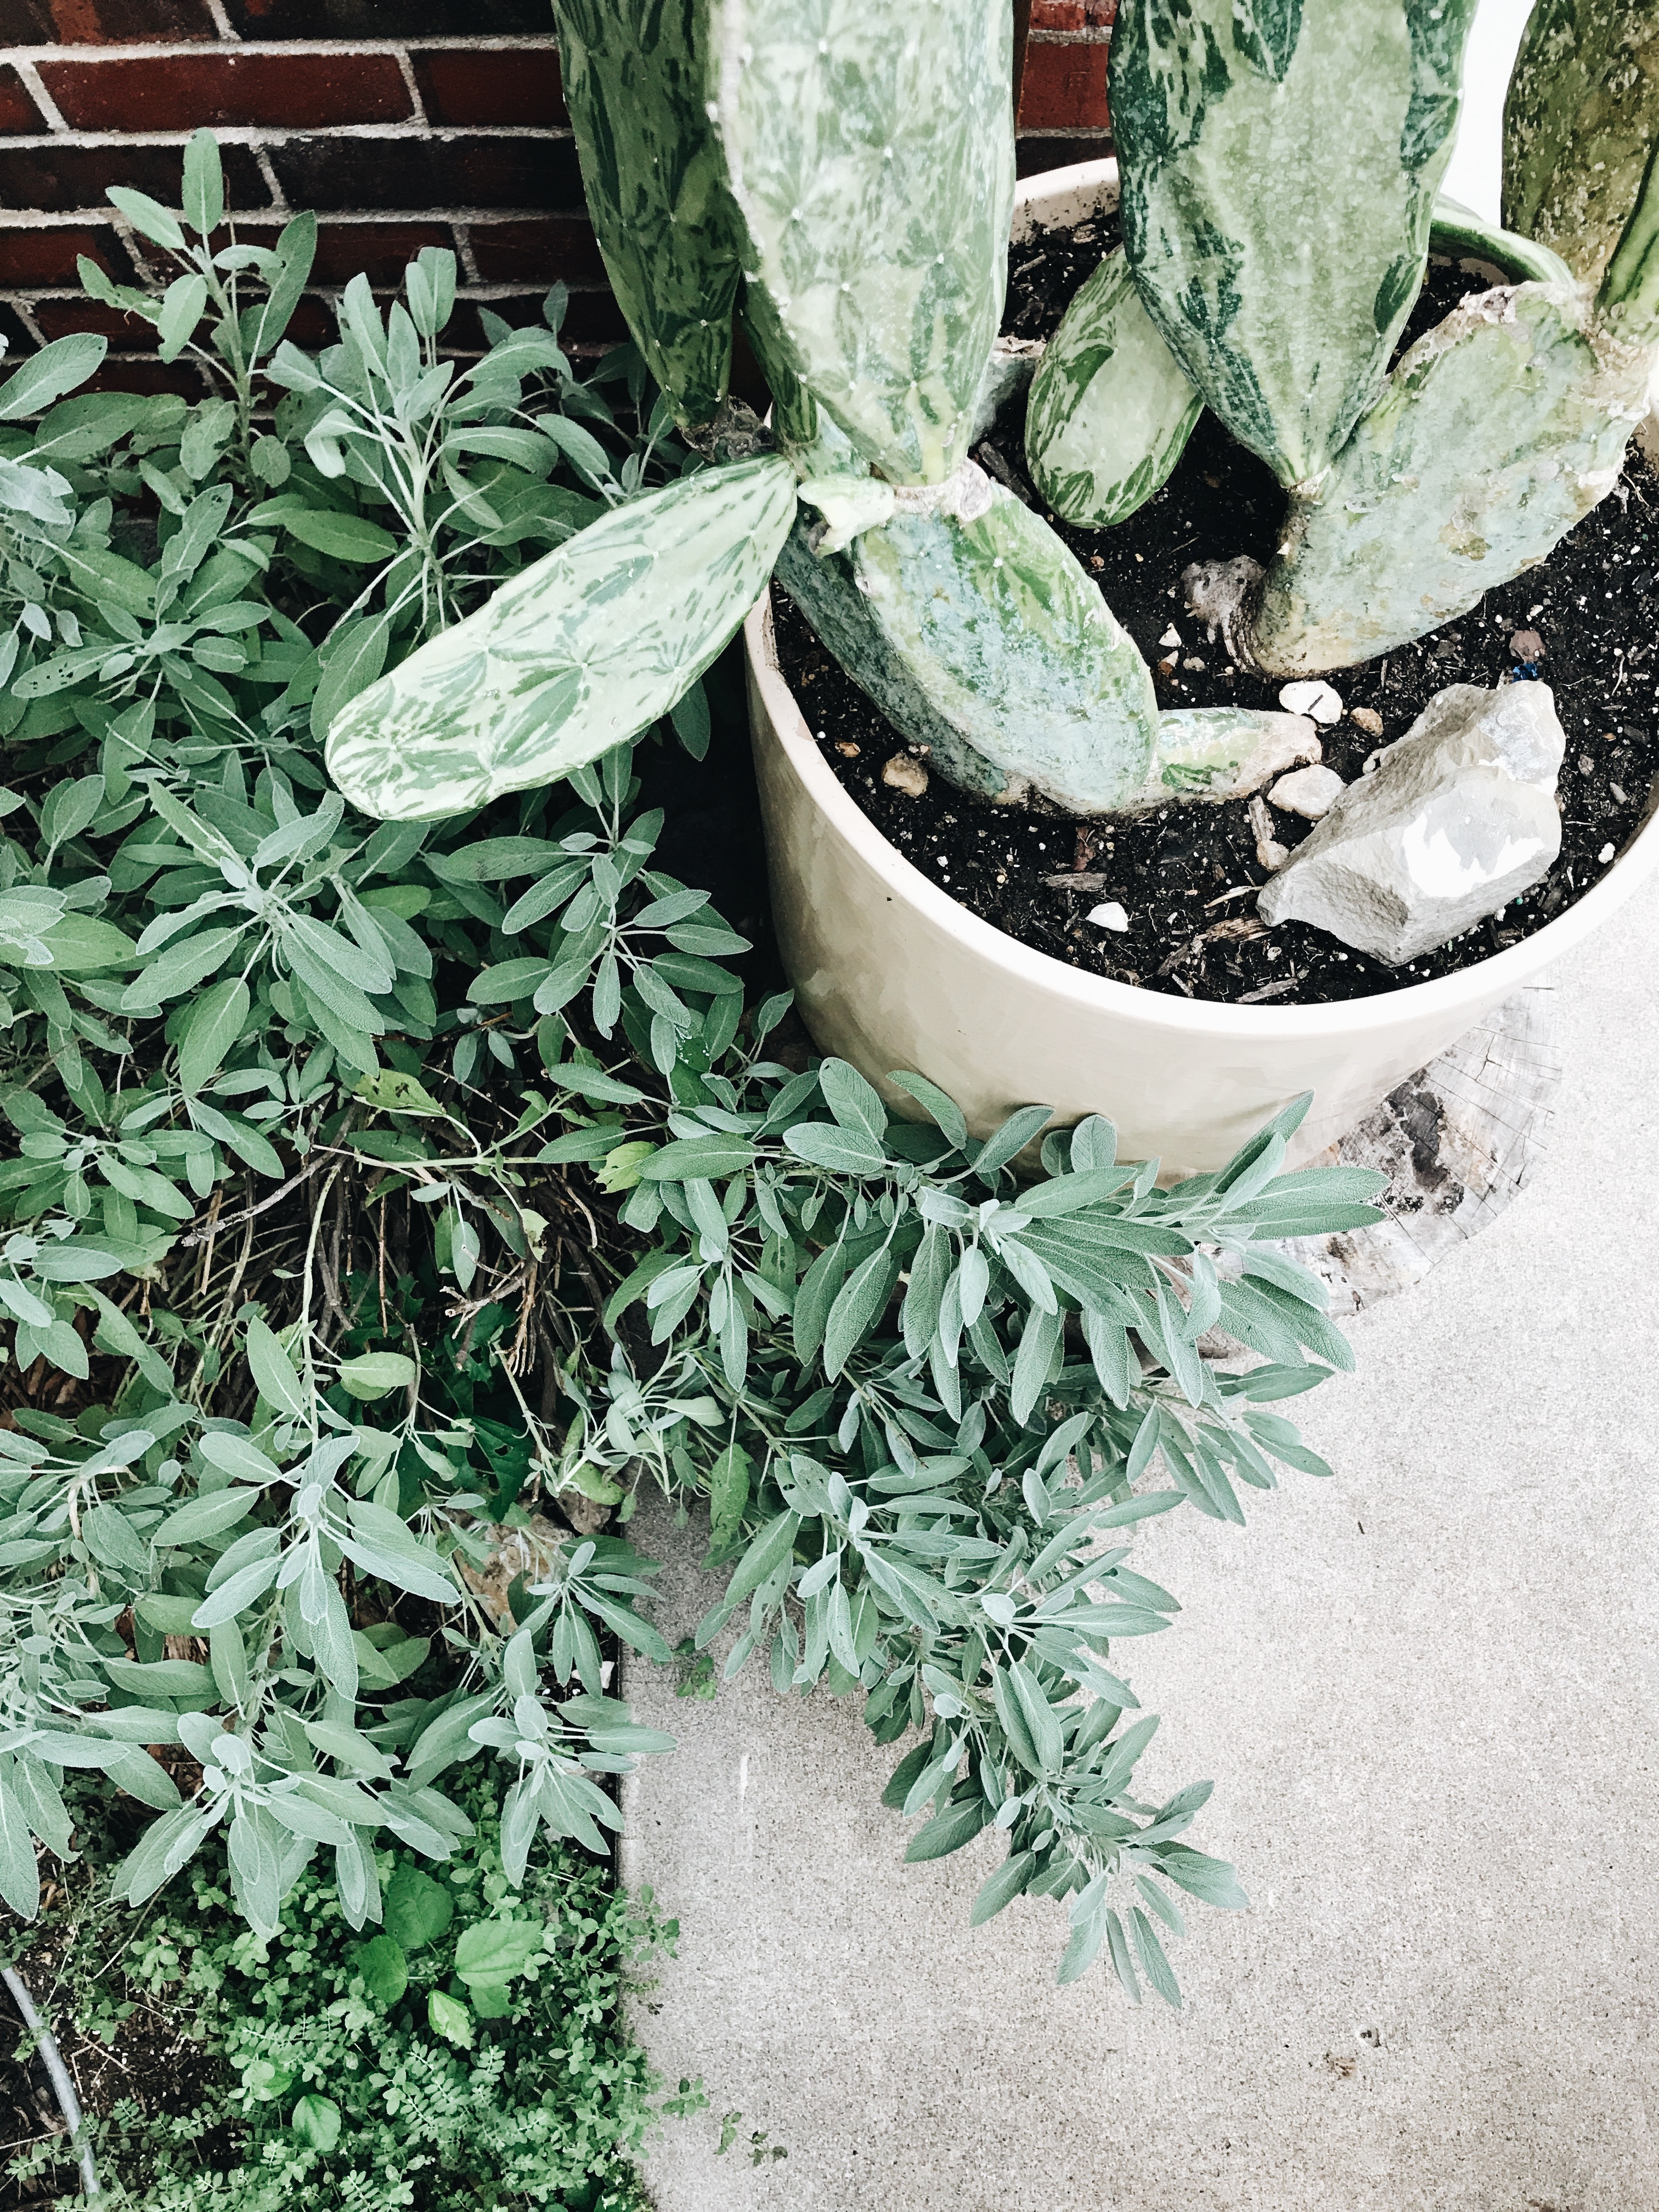 cactus and herbs